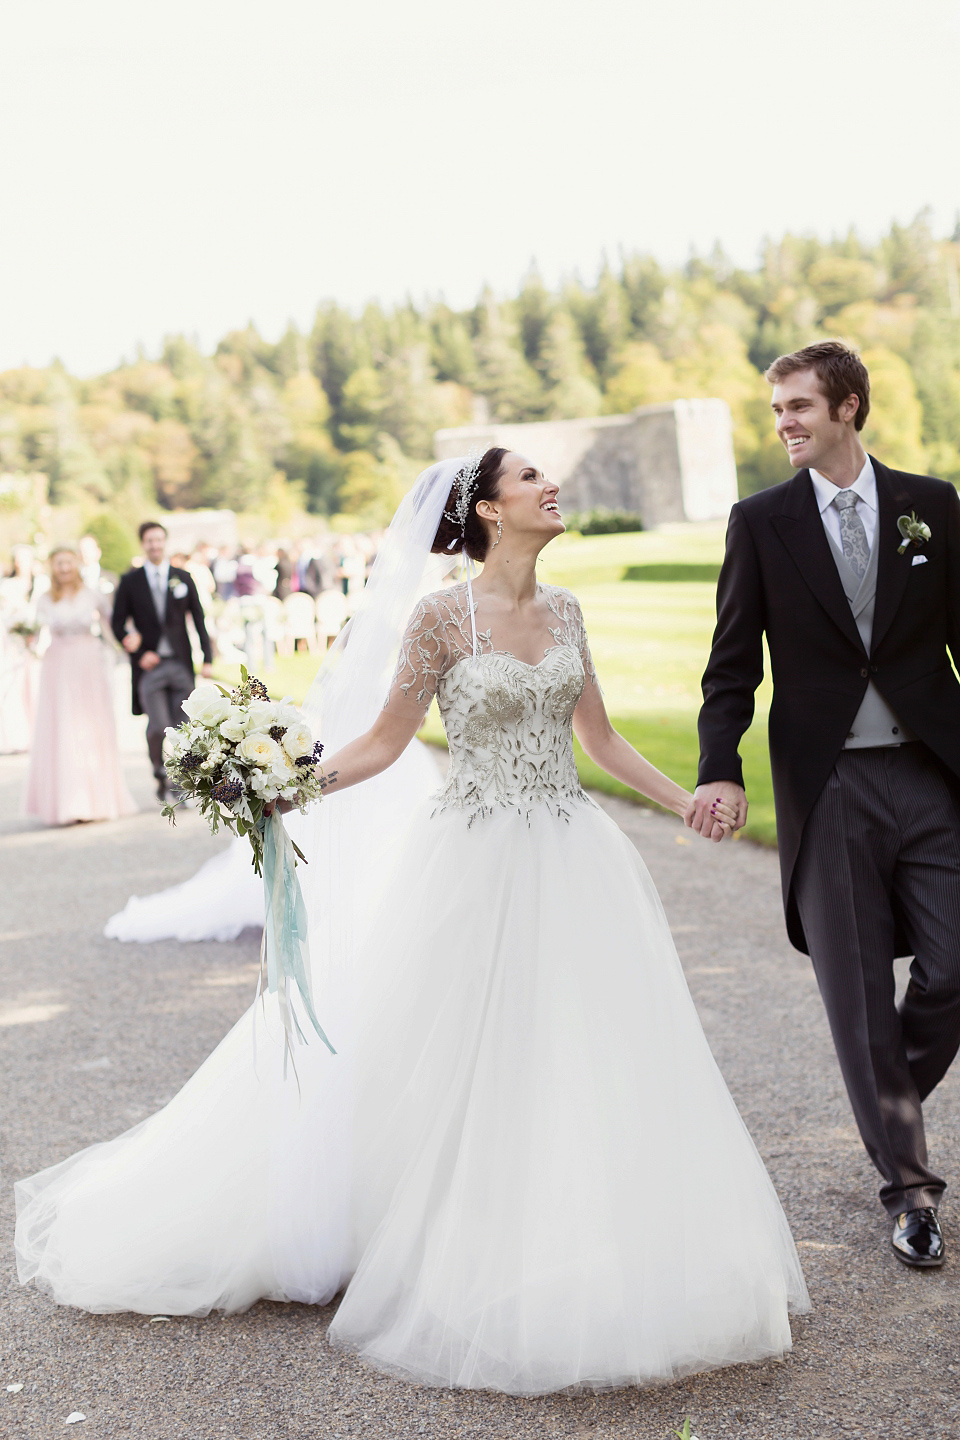 A Marchesa Gown for a Fairy Tale Celtic and Jewish Fusion Wedding in an Irish Castle